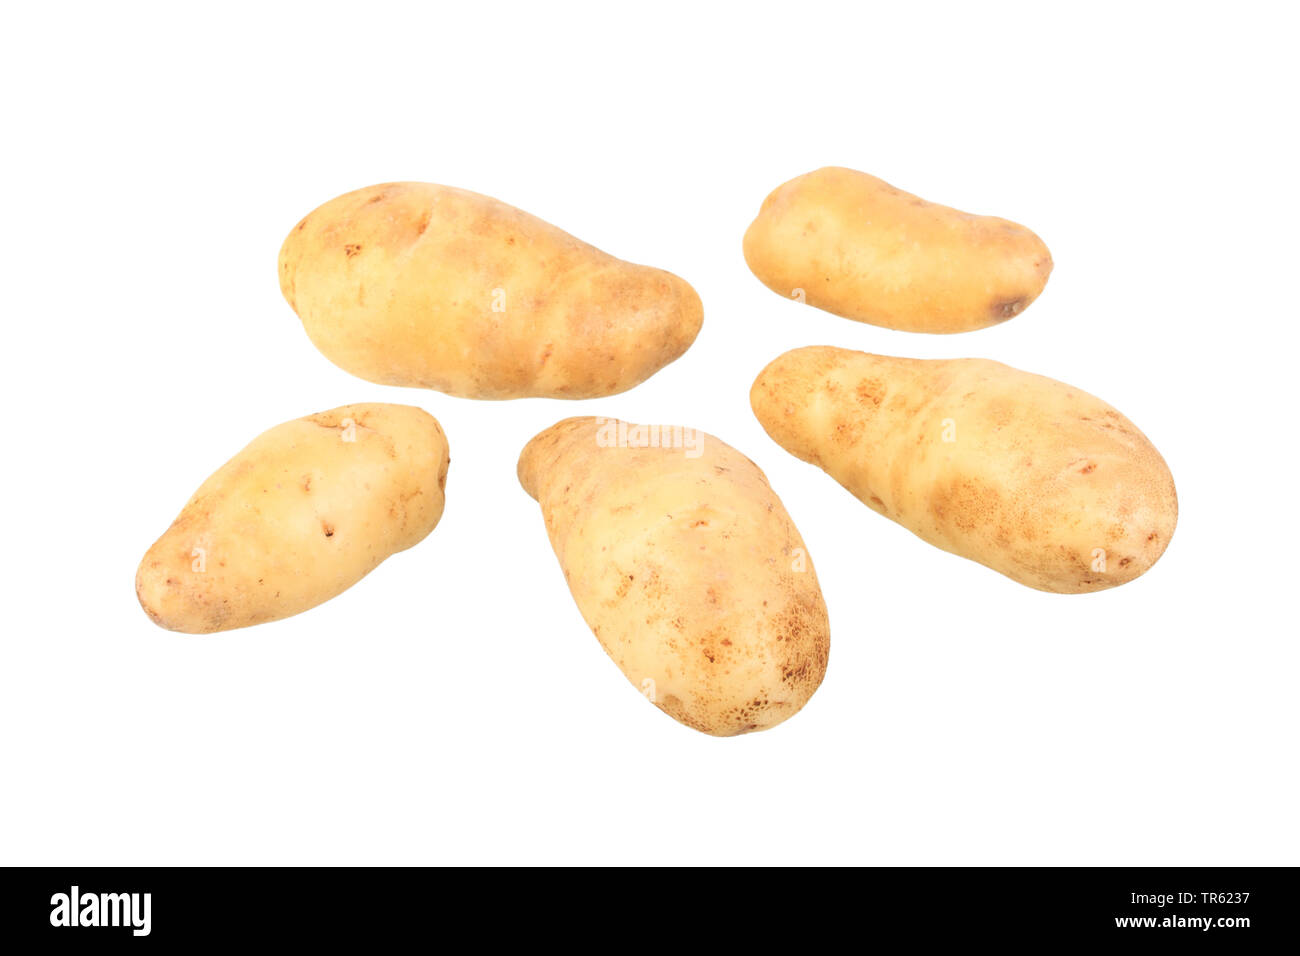 potato (Solanum tuberosum La Ratte d'Ardeche), potatoes of cultivar La Ratte d'Ardeche, cutout Stock Photo